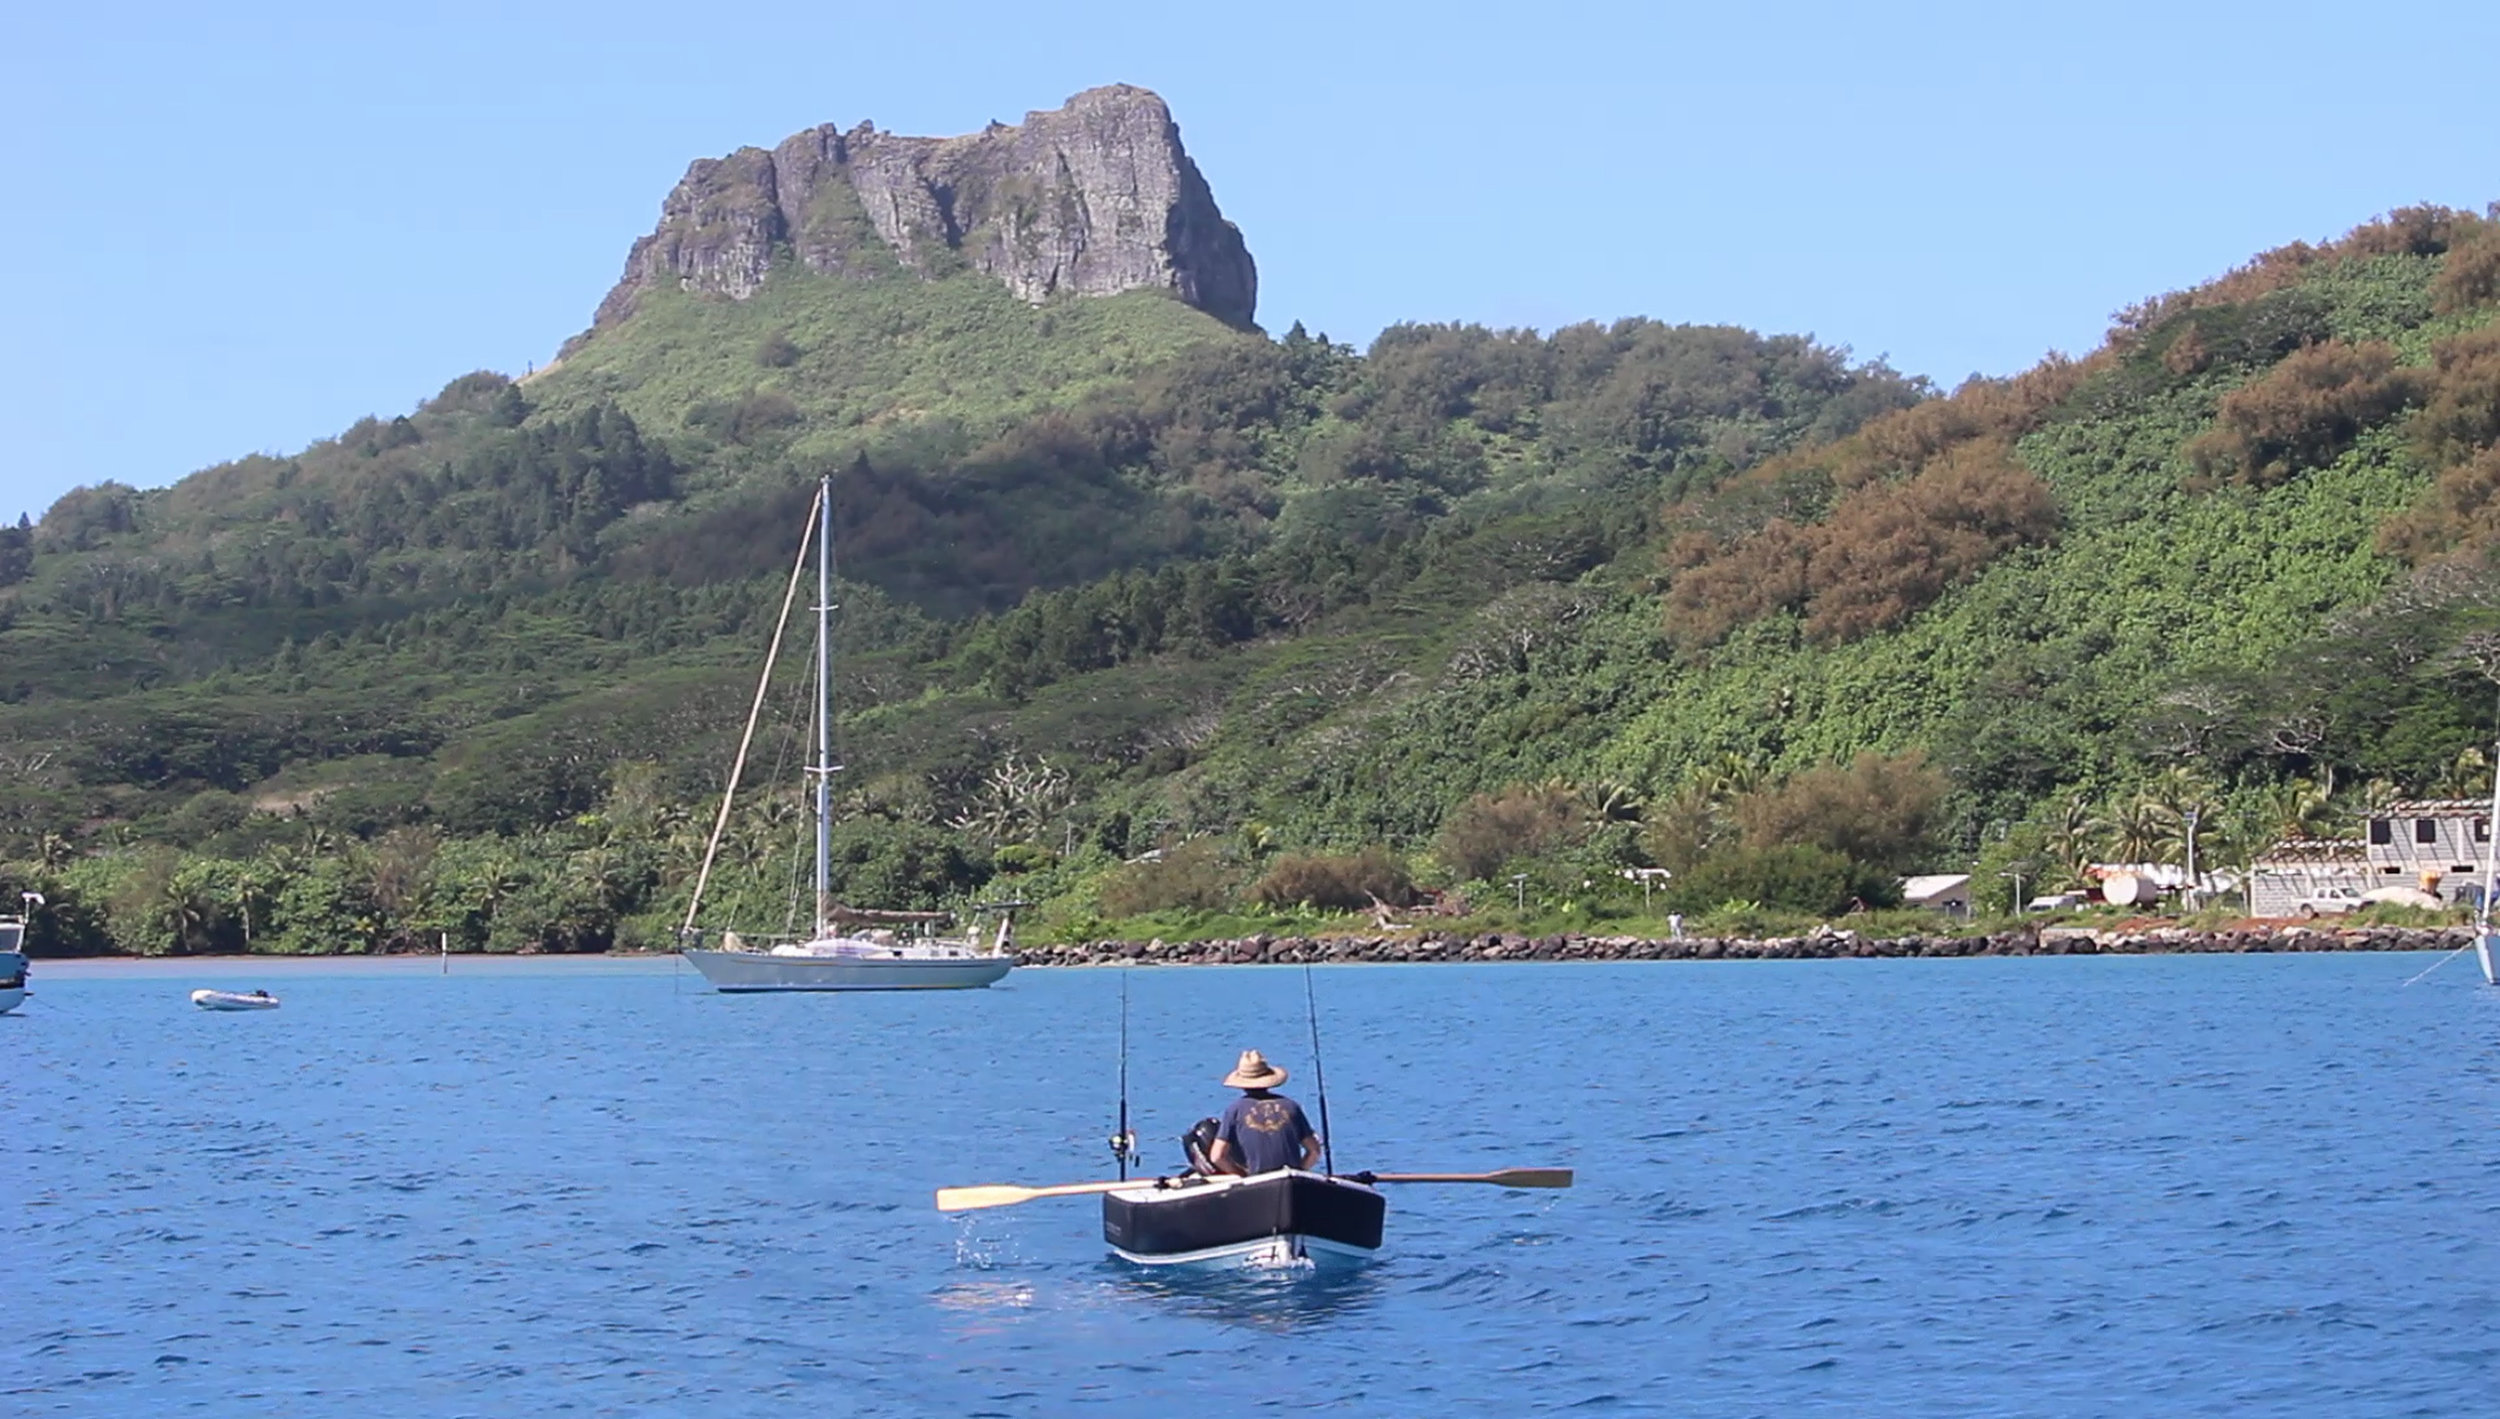 Mick Rowing back to Roam in the main anchorage